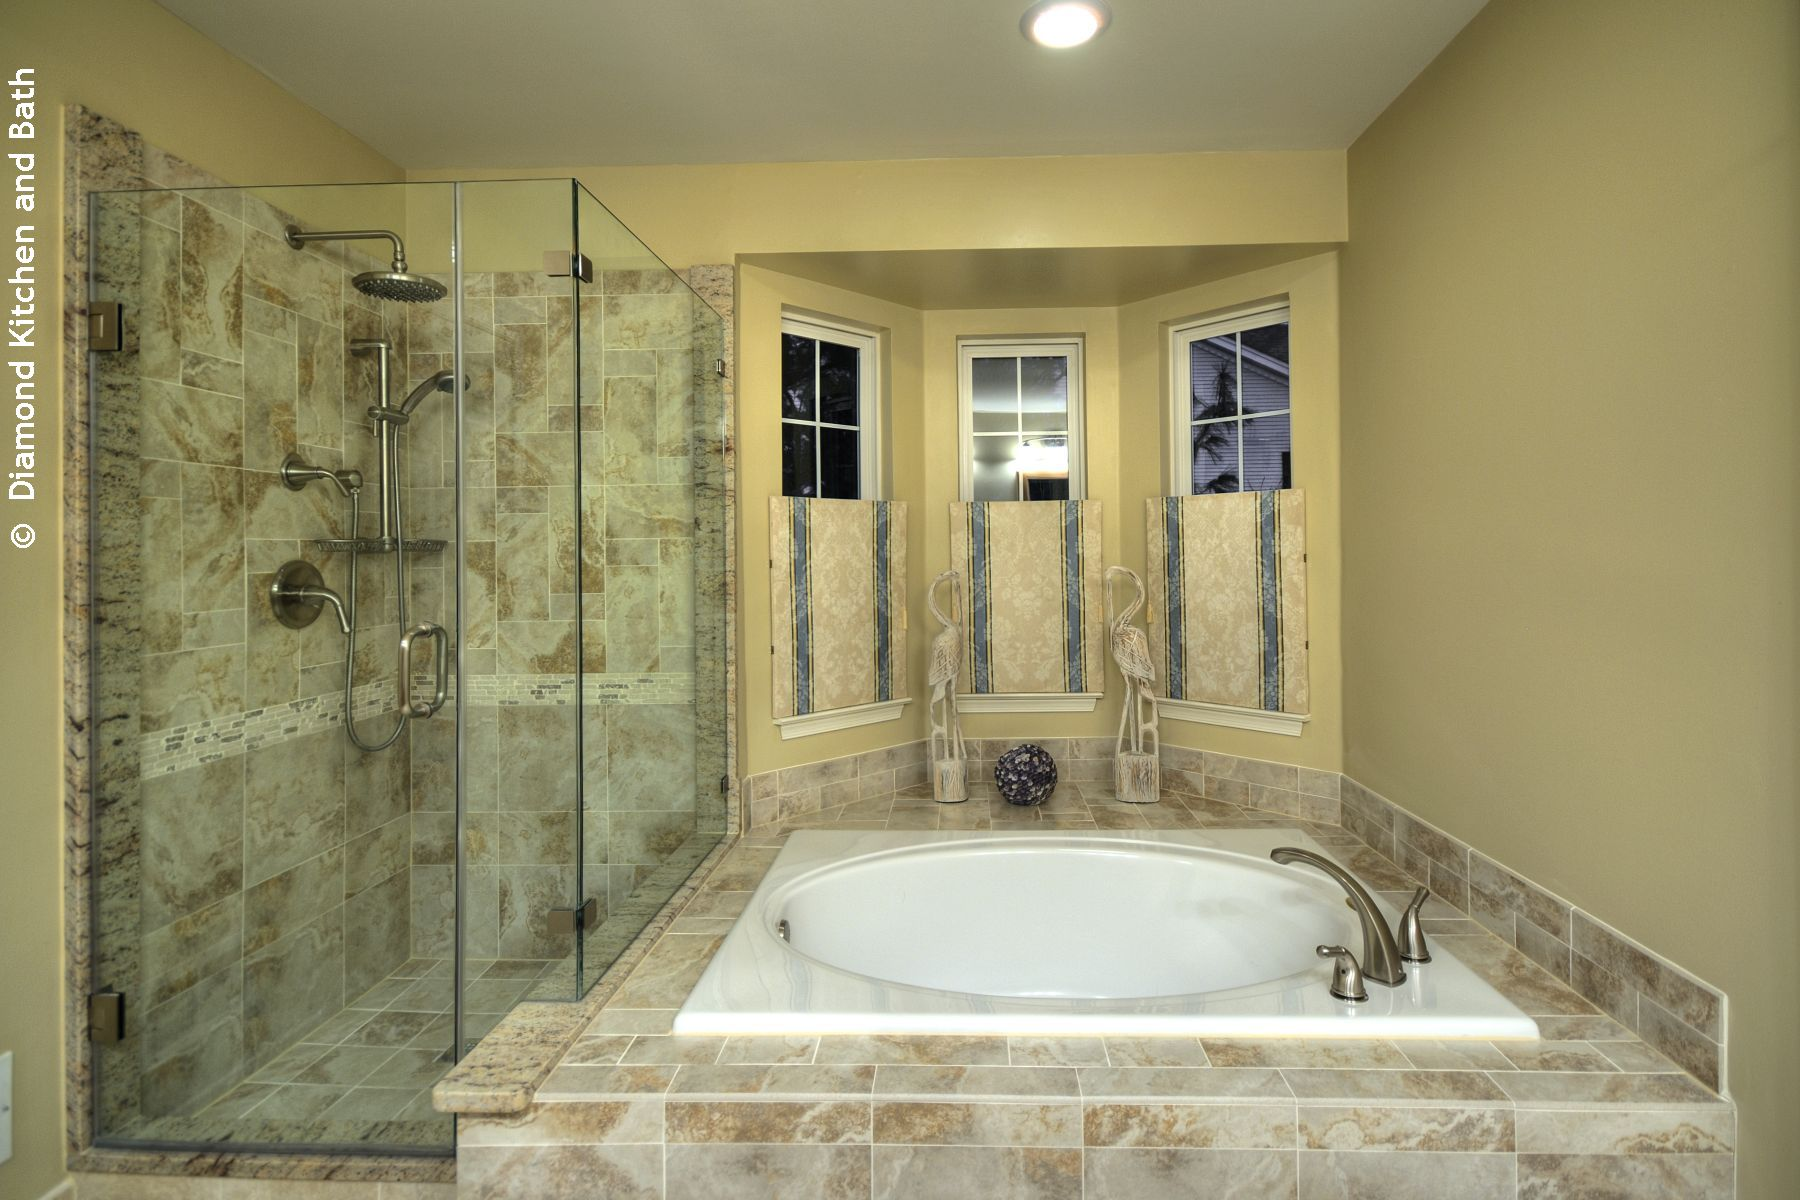 Bathroom Remodeling Virtual Tour in Washington Crossing, PA